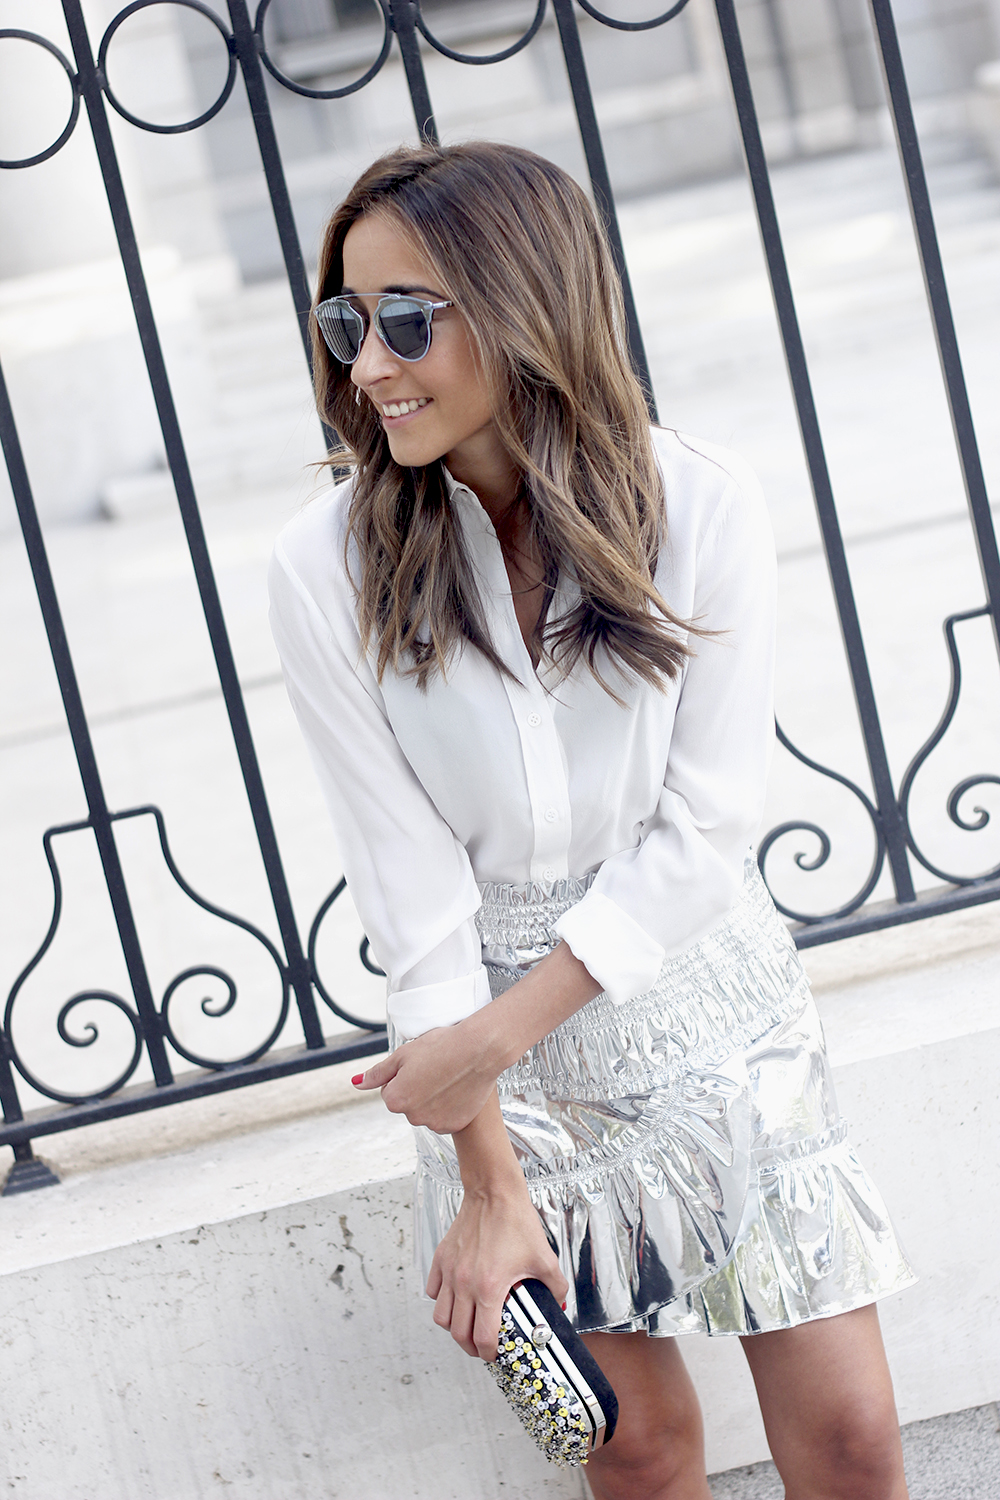 Isabel Marant Metallic Skirt white shirt nude sandals dior so real sunnies outfit style fashion12